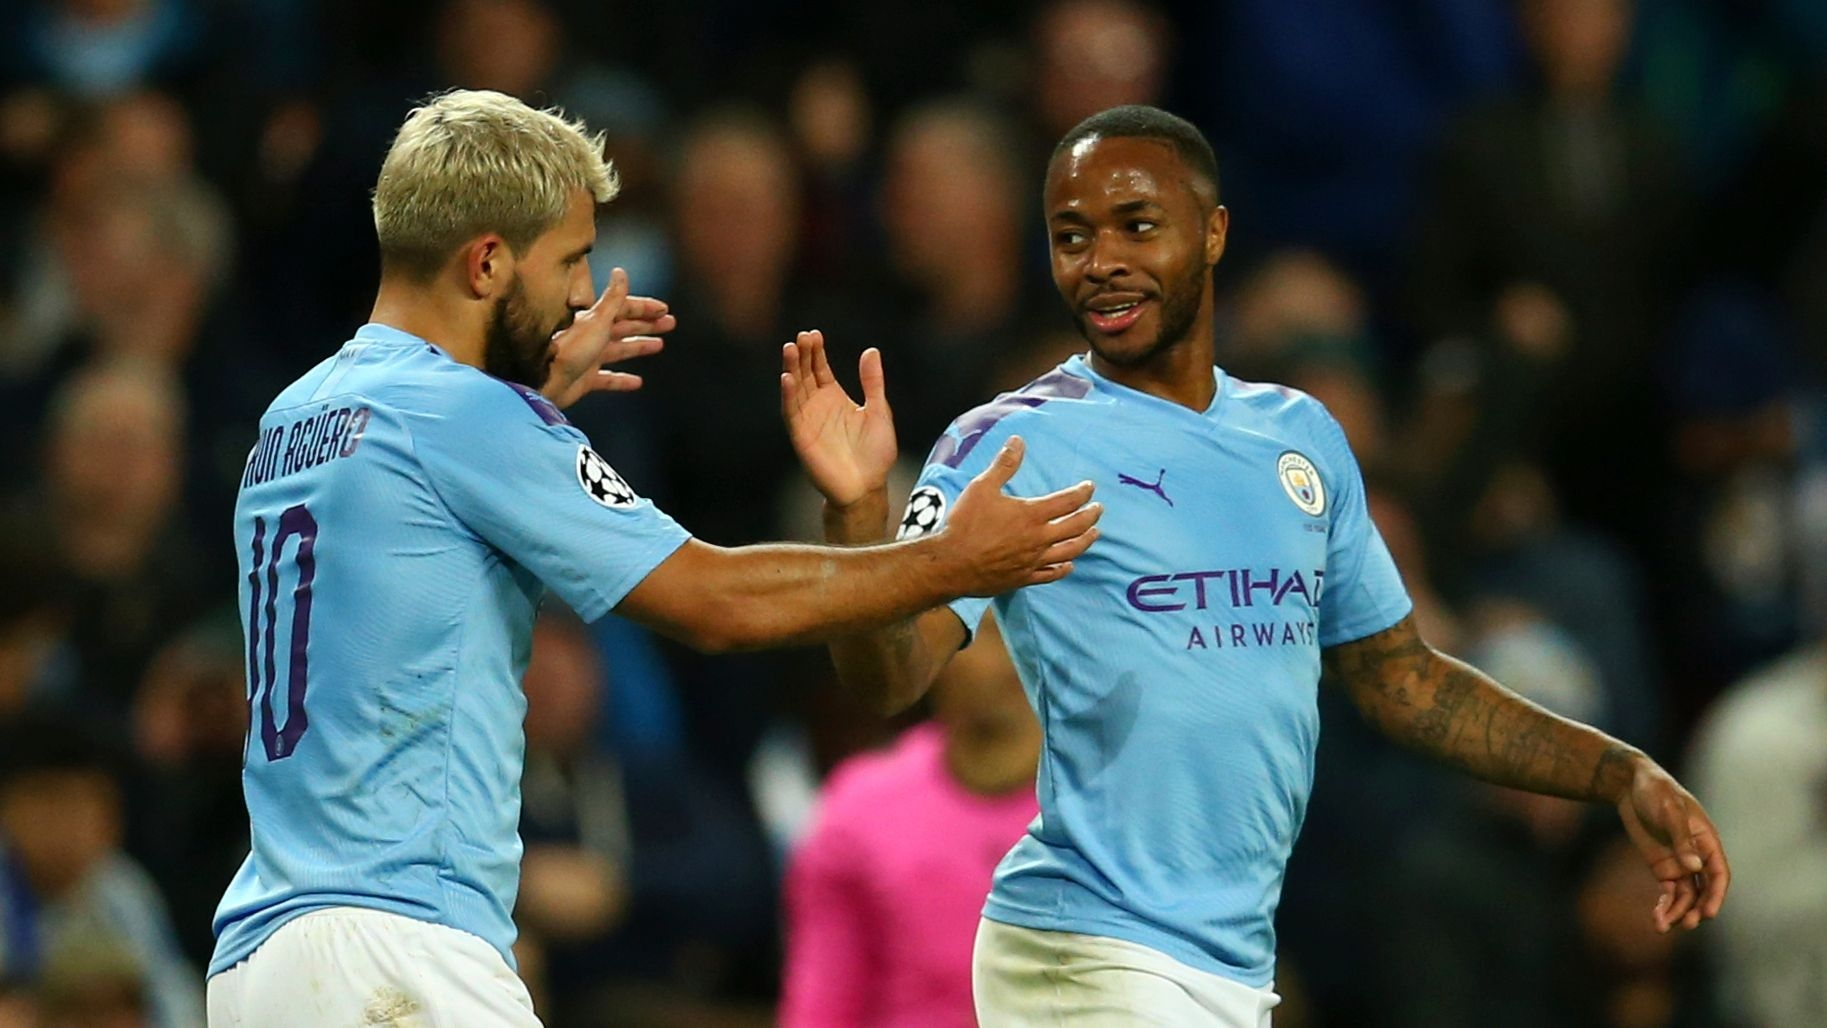 Champions League: Sterling Nets Hat-Trick as City bt Atalanta 5-1